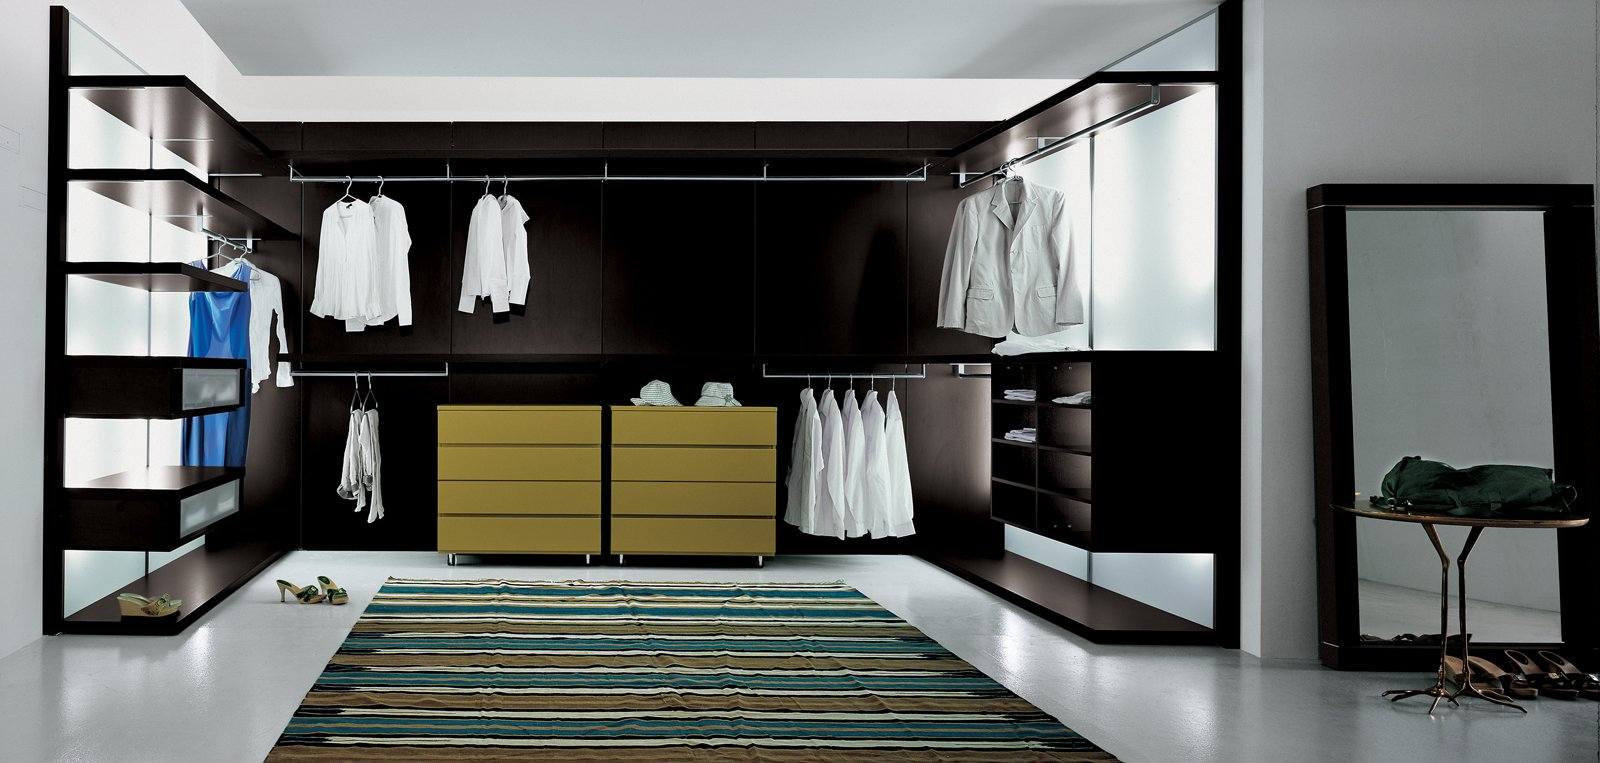 Anteprima by Pianca / pianca.it  Read our   Dwell Reports on closet systems from the June 2009 issue 10 Modern Walk-In Closets - Photo 9 of 10